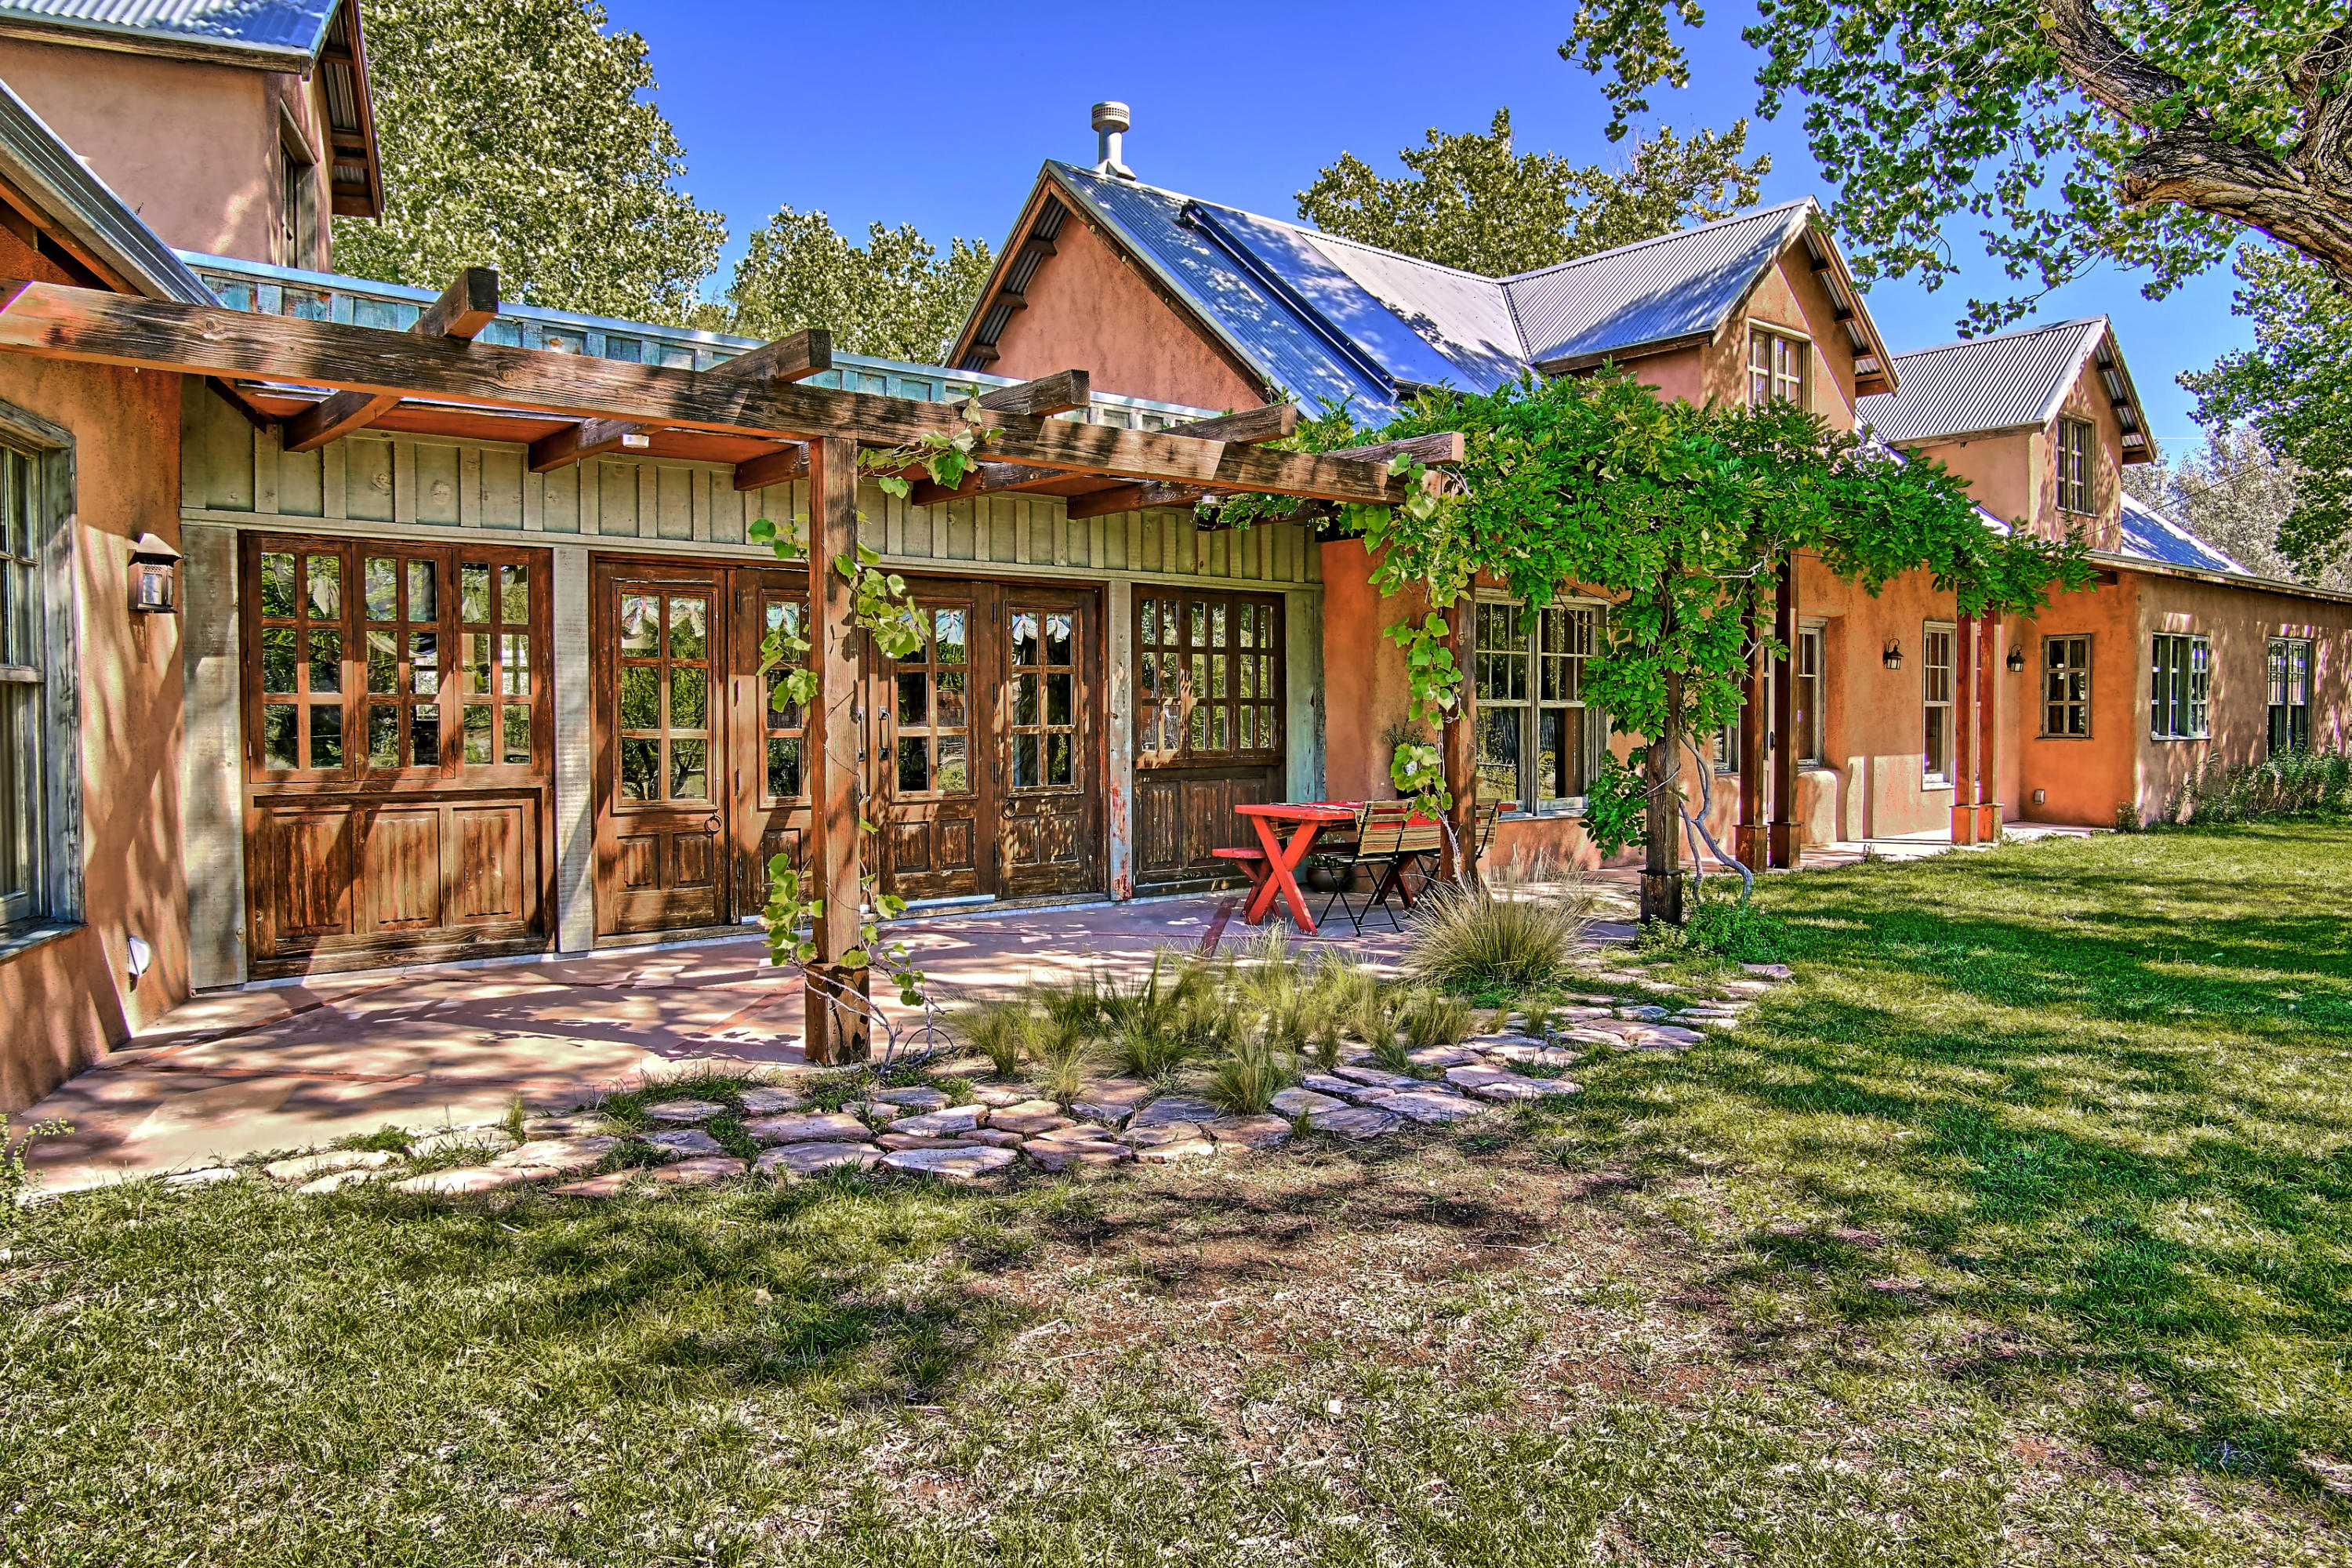 239 BOSQUE ACRES Property Photo - Corrales, NM real estate listing